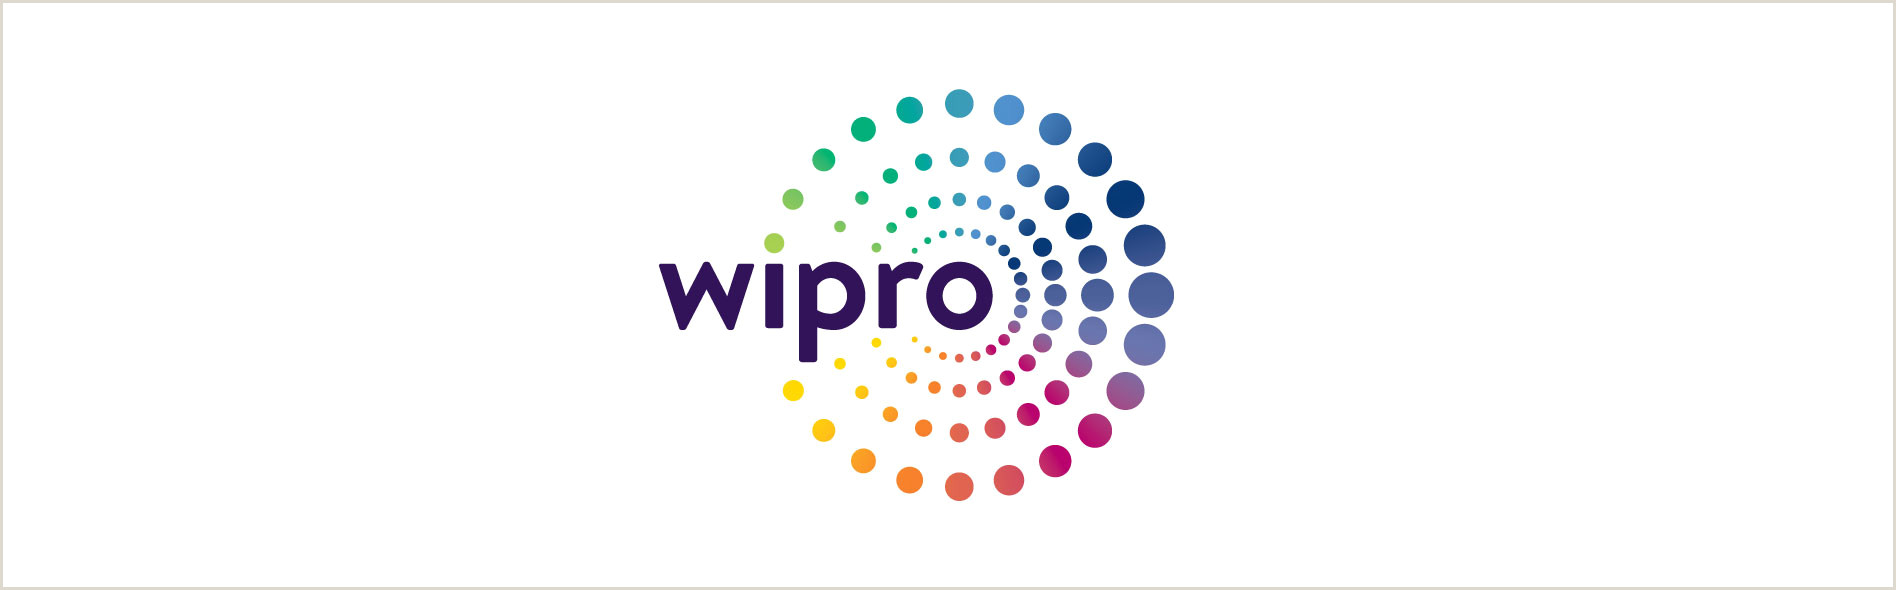 Business Card Design Company Wipro